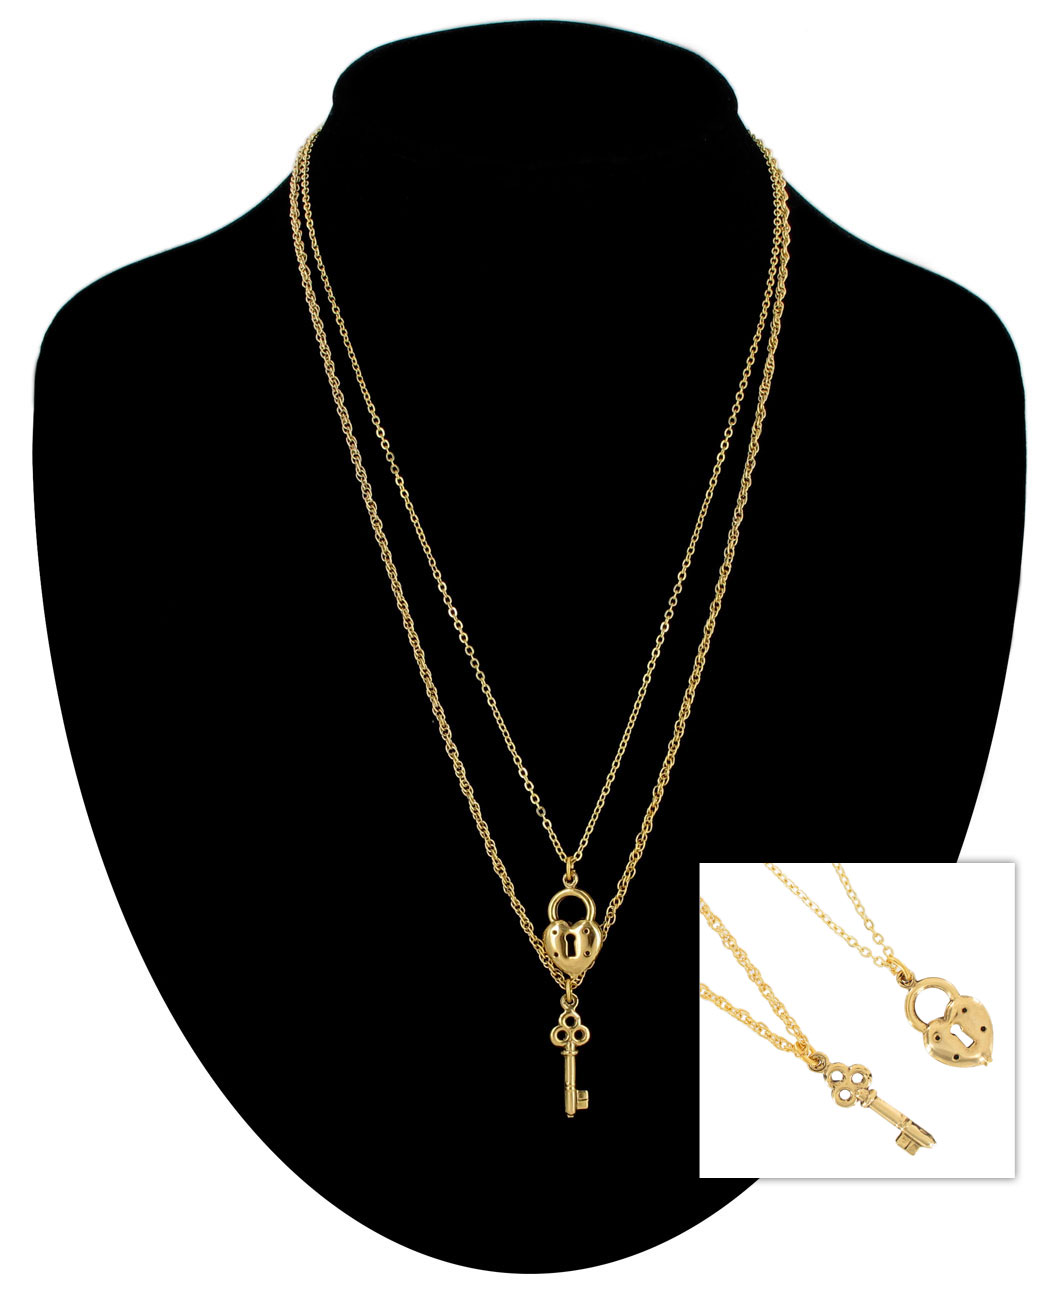 119b2cc95e Ky & Co Gold Tone Chain Small Heart Key Charm Pendant Sweetheart Necklace  Set made-in-usa | Necklaces | ajraefields